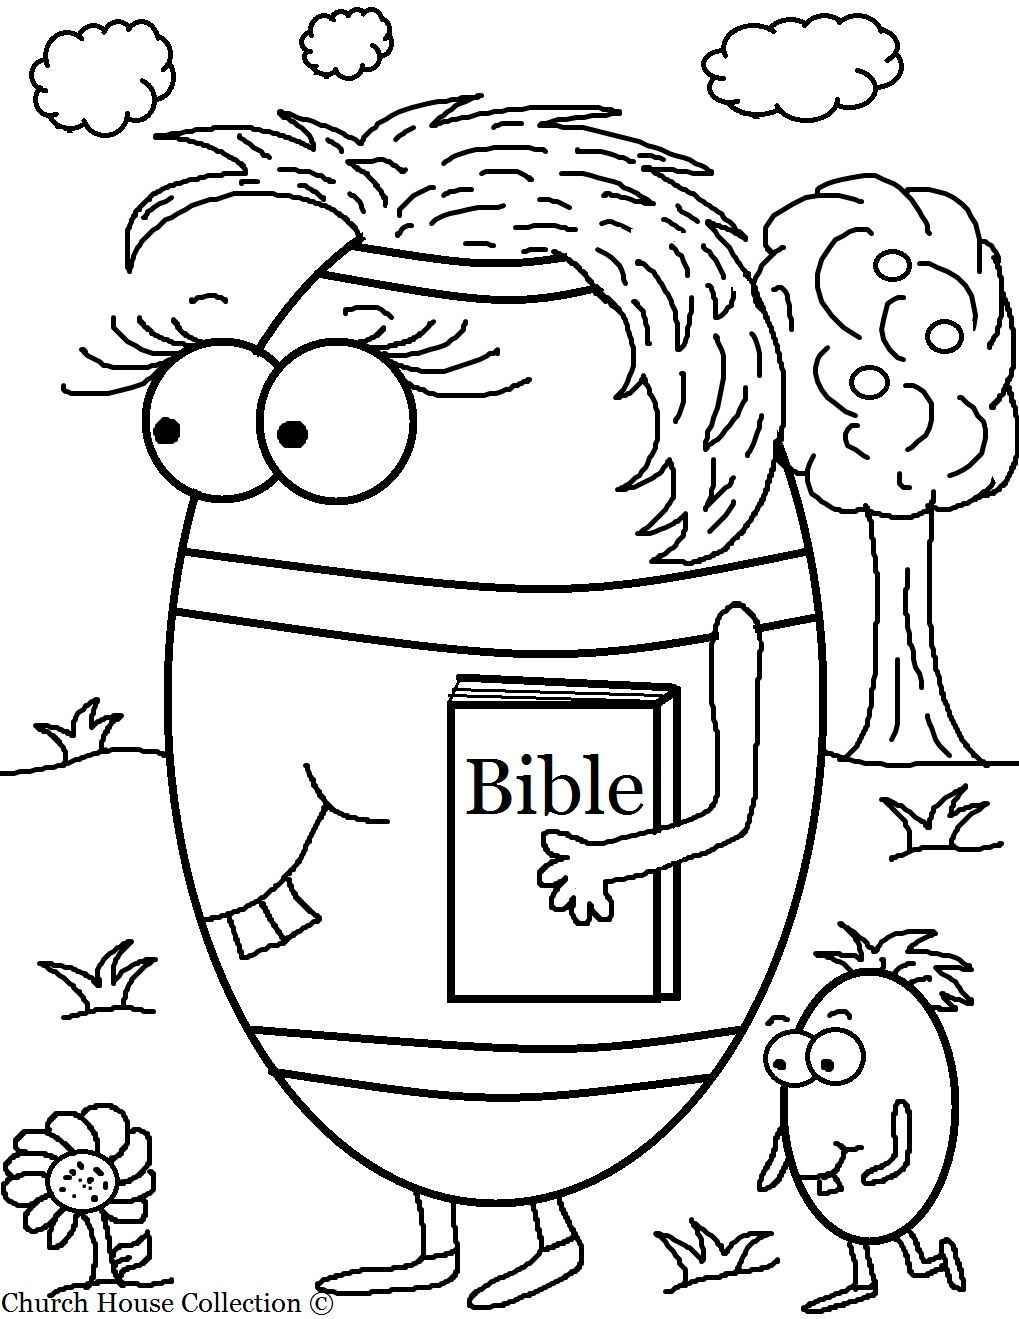 childrens church coloring pages - photo#10